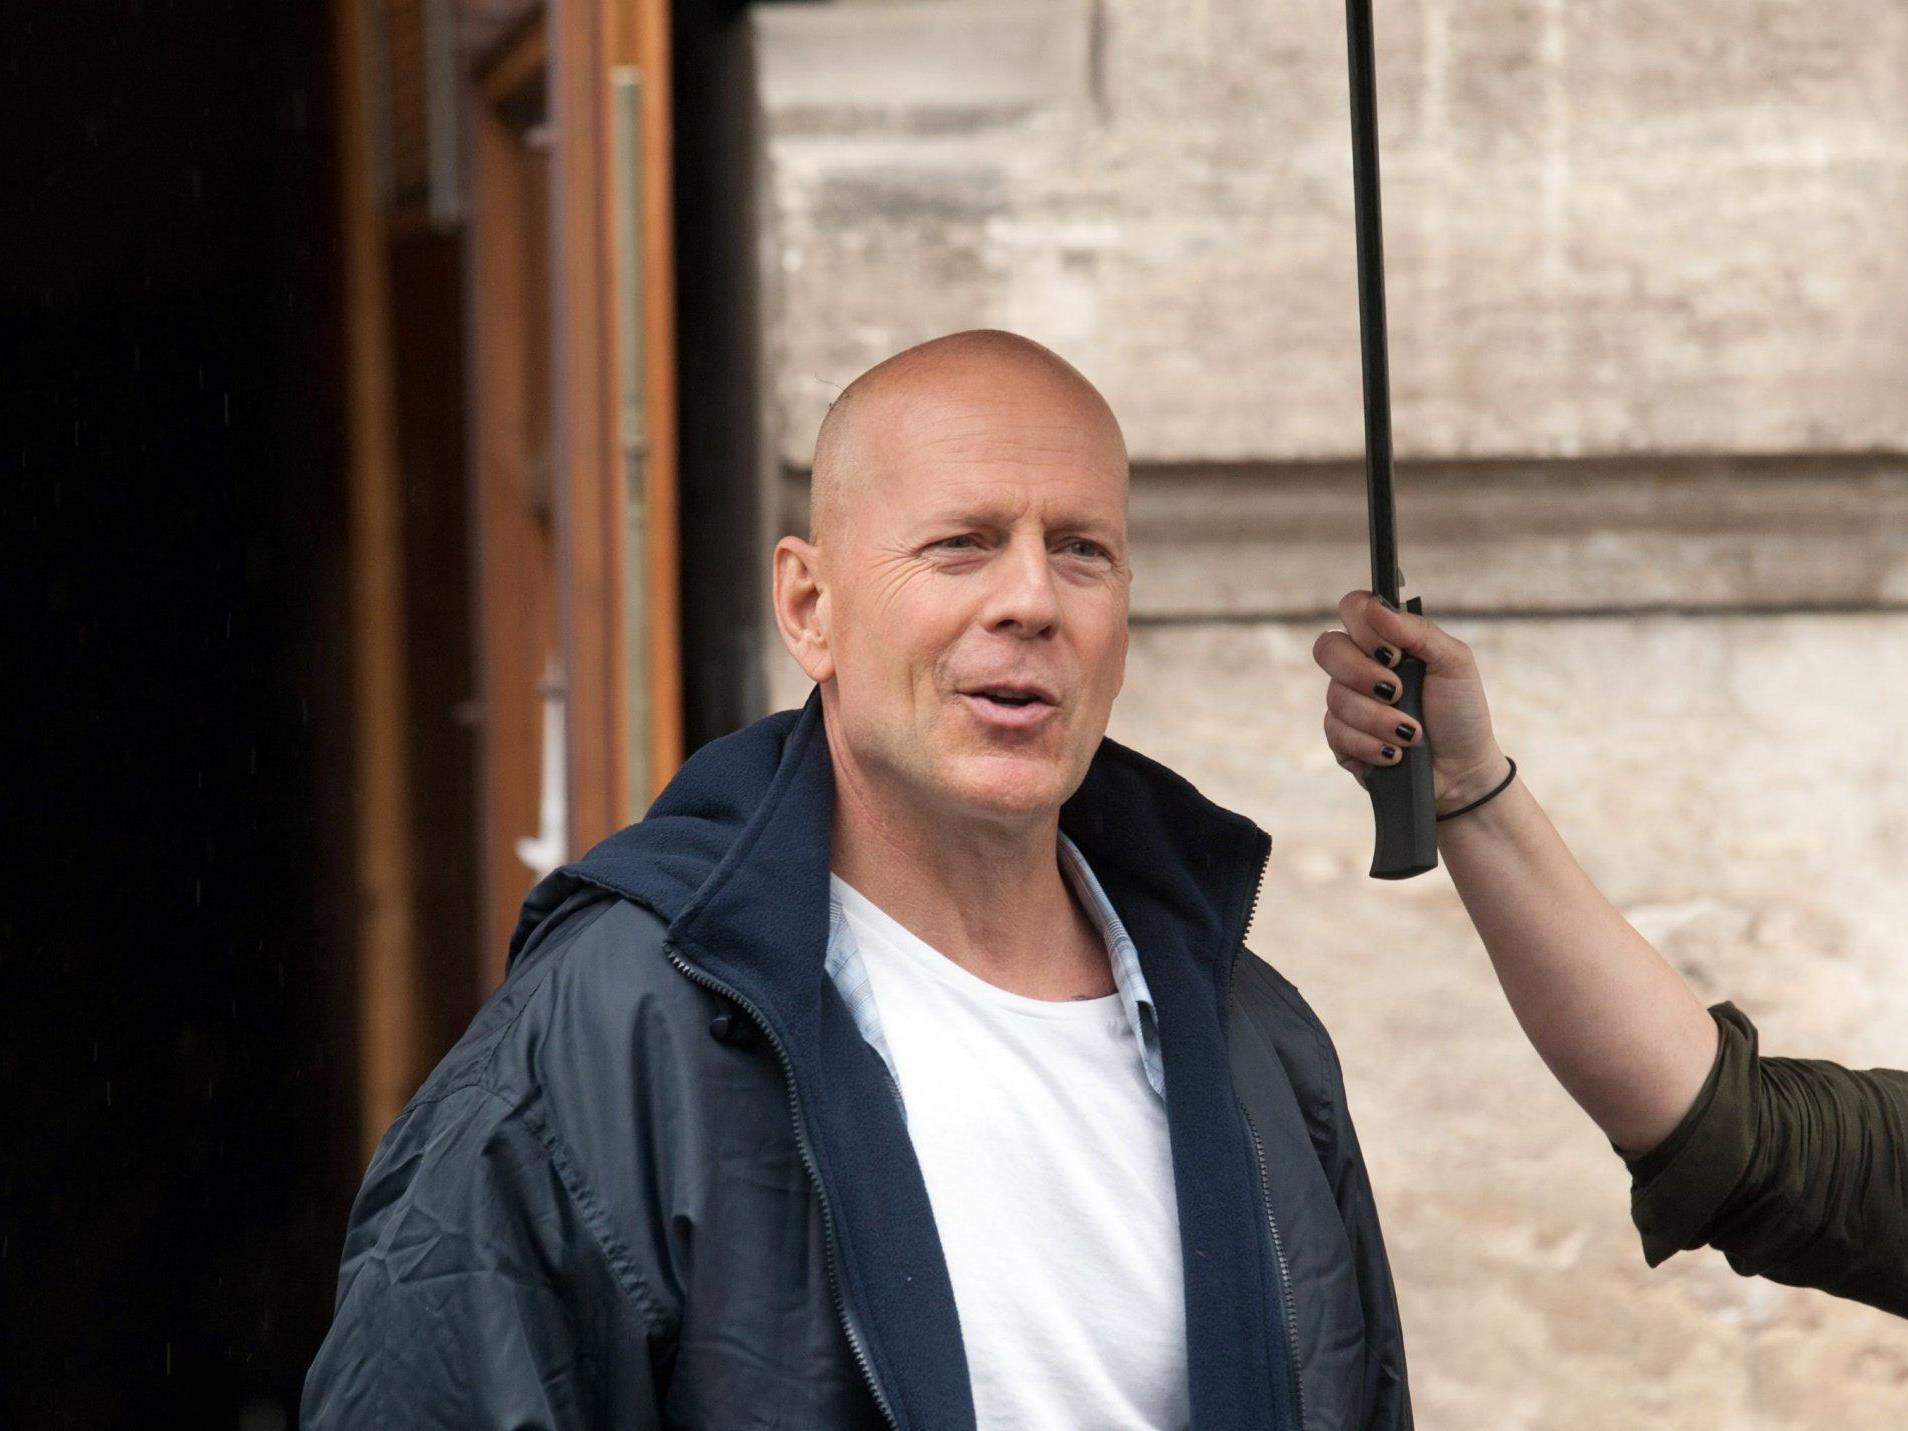 Gut beschirmter Action-Star Bruce Willis